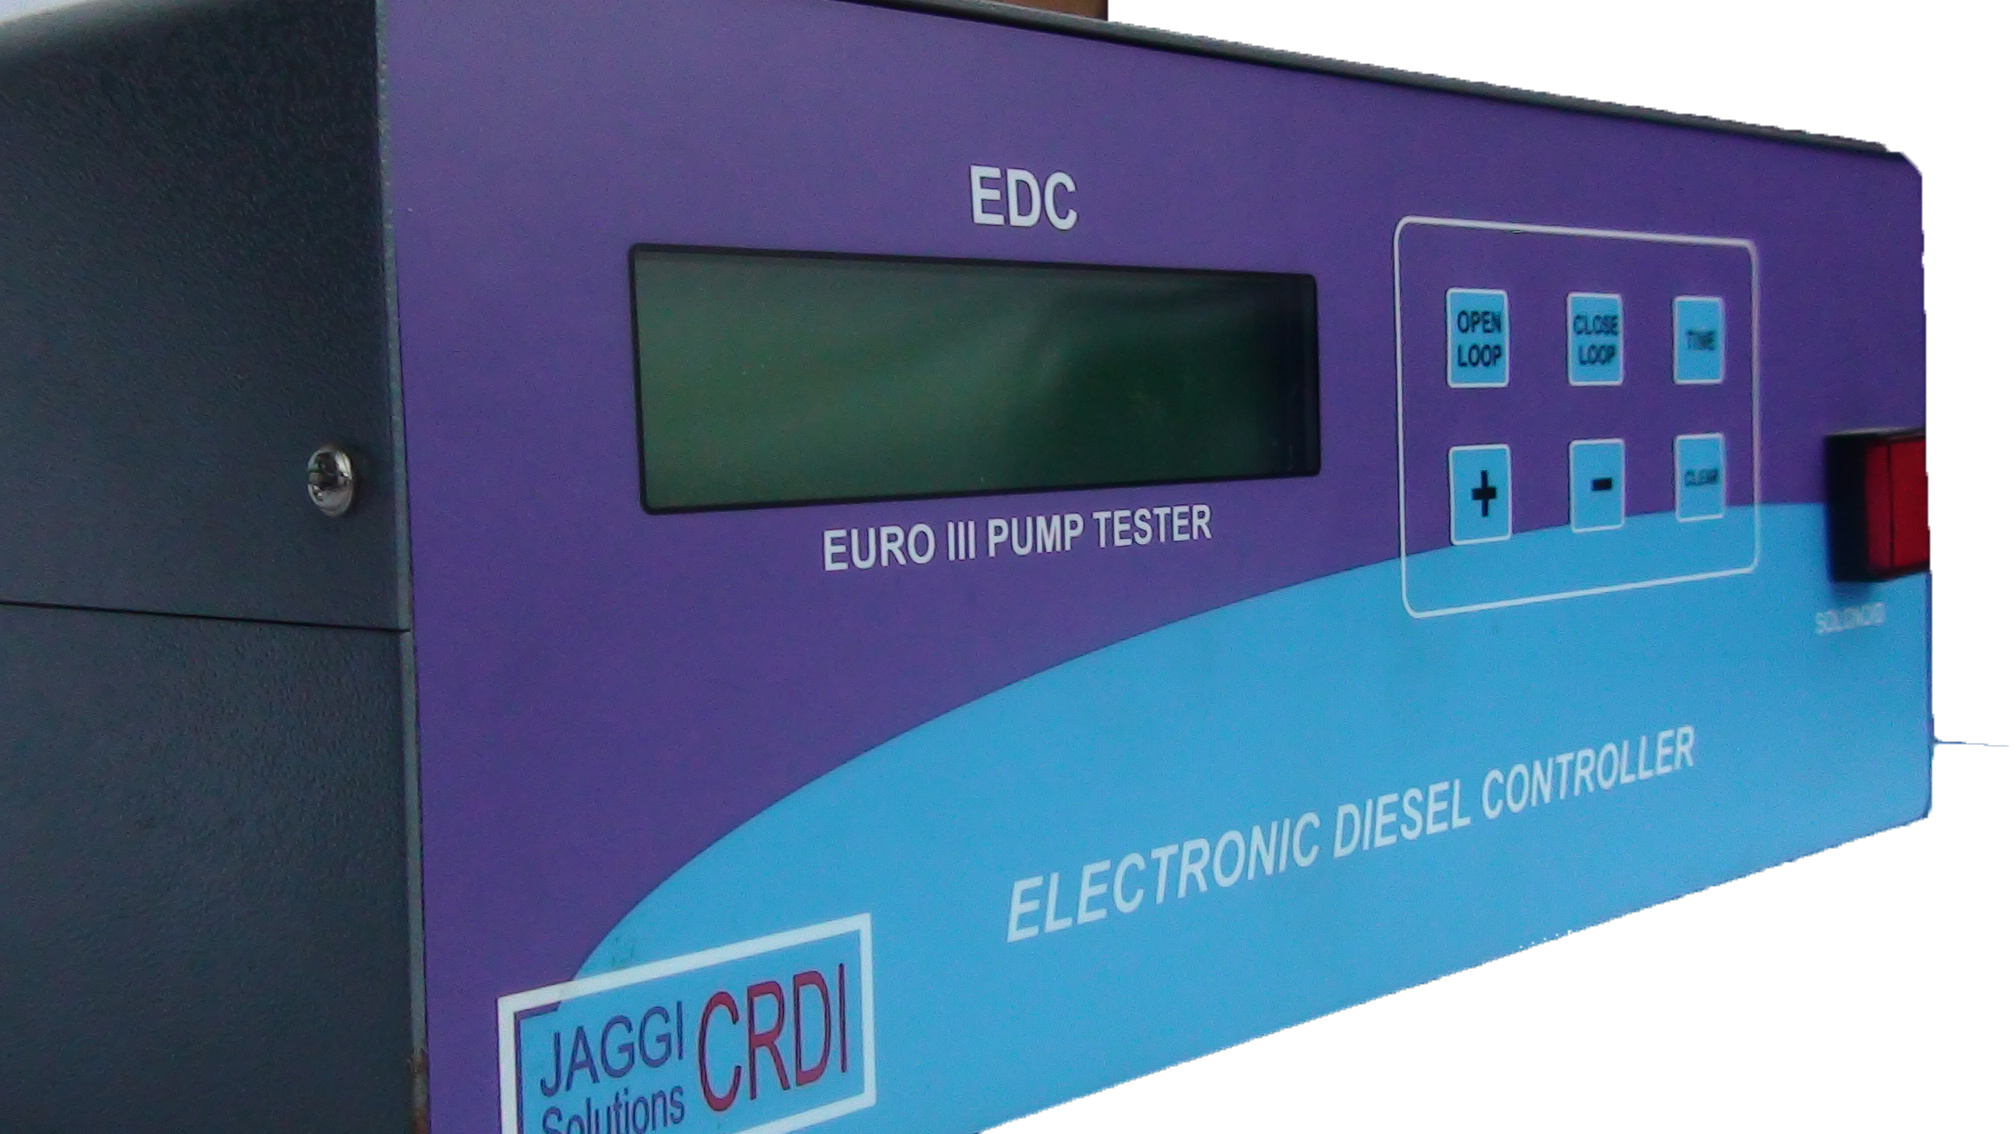 Electronic Diesel Control